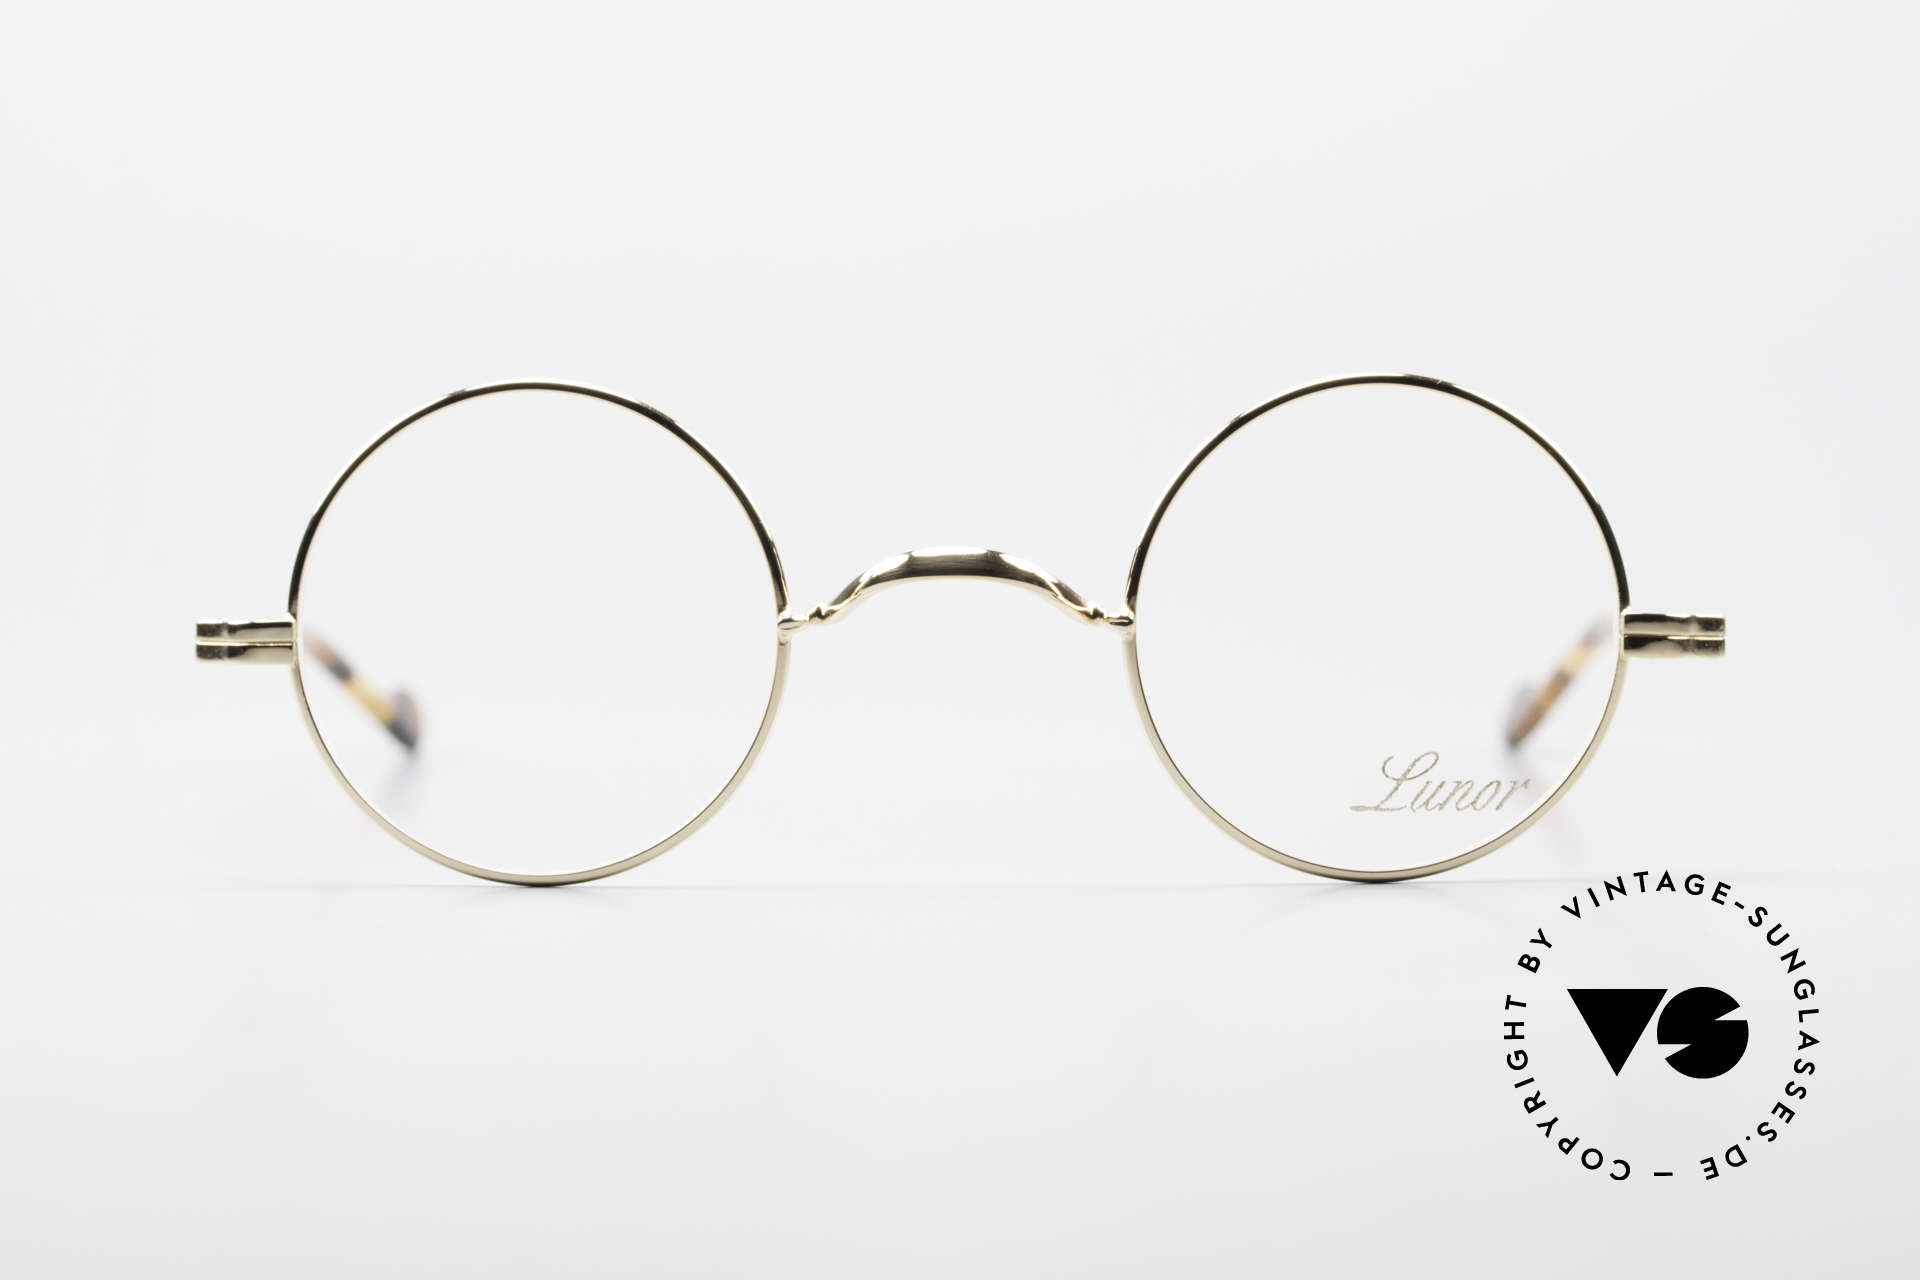 Lunor II A 12 Round Eyeglasses Gold Plated, combination: full rimmed metal frame & acetate temples, Made for Men and Women